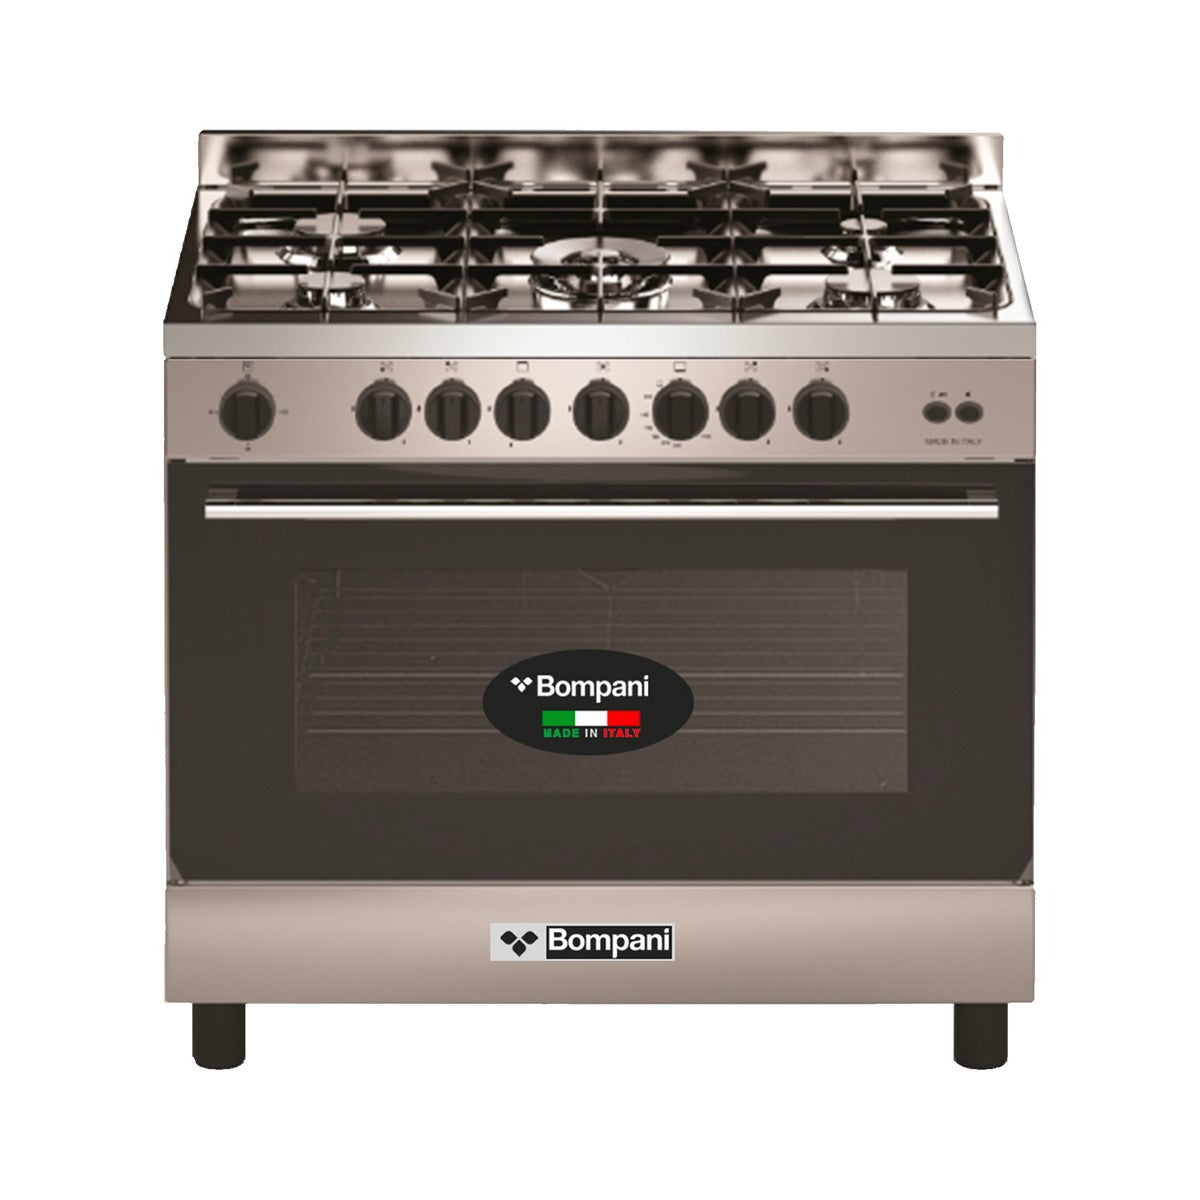 Bompani 5 Gas Burner 90x60cm Cooker with Full Gas Option Oven - BO693ND/L